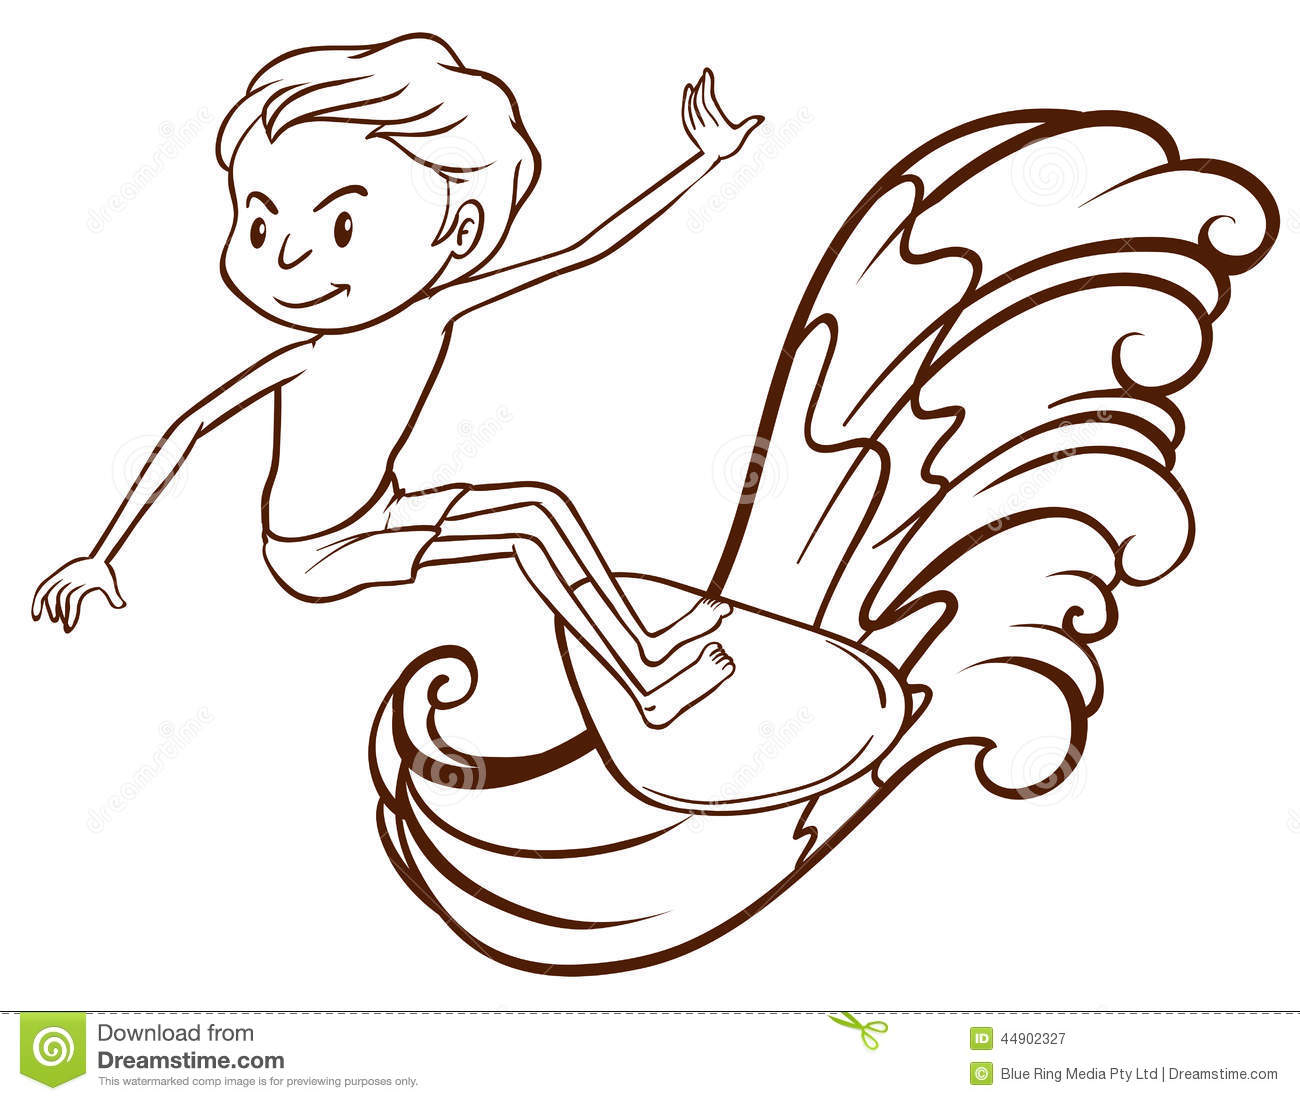 A Simple Sketch Of A Boy Doing Water Sport Stock Vector ...